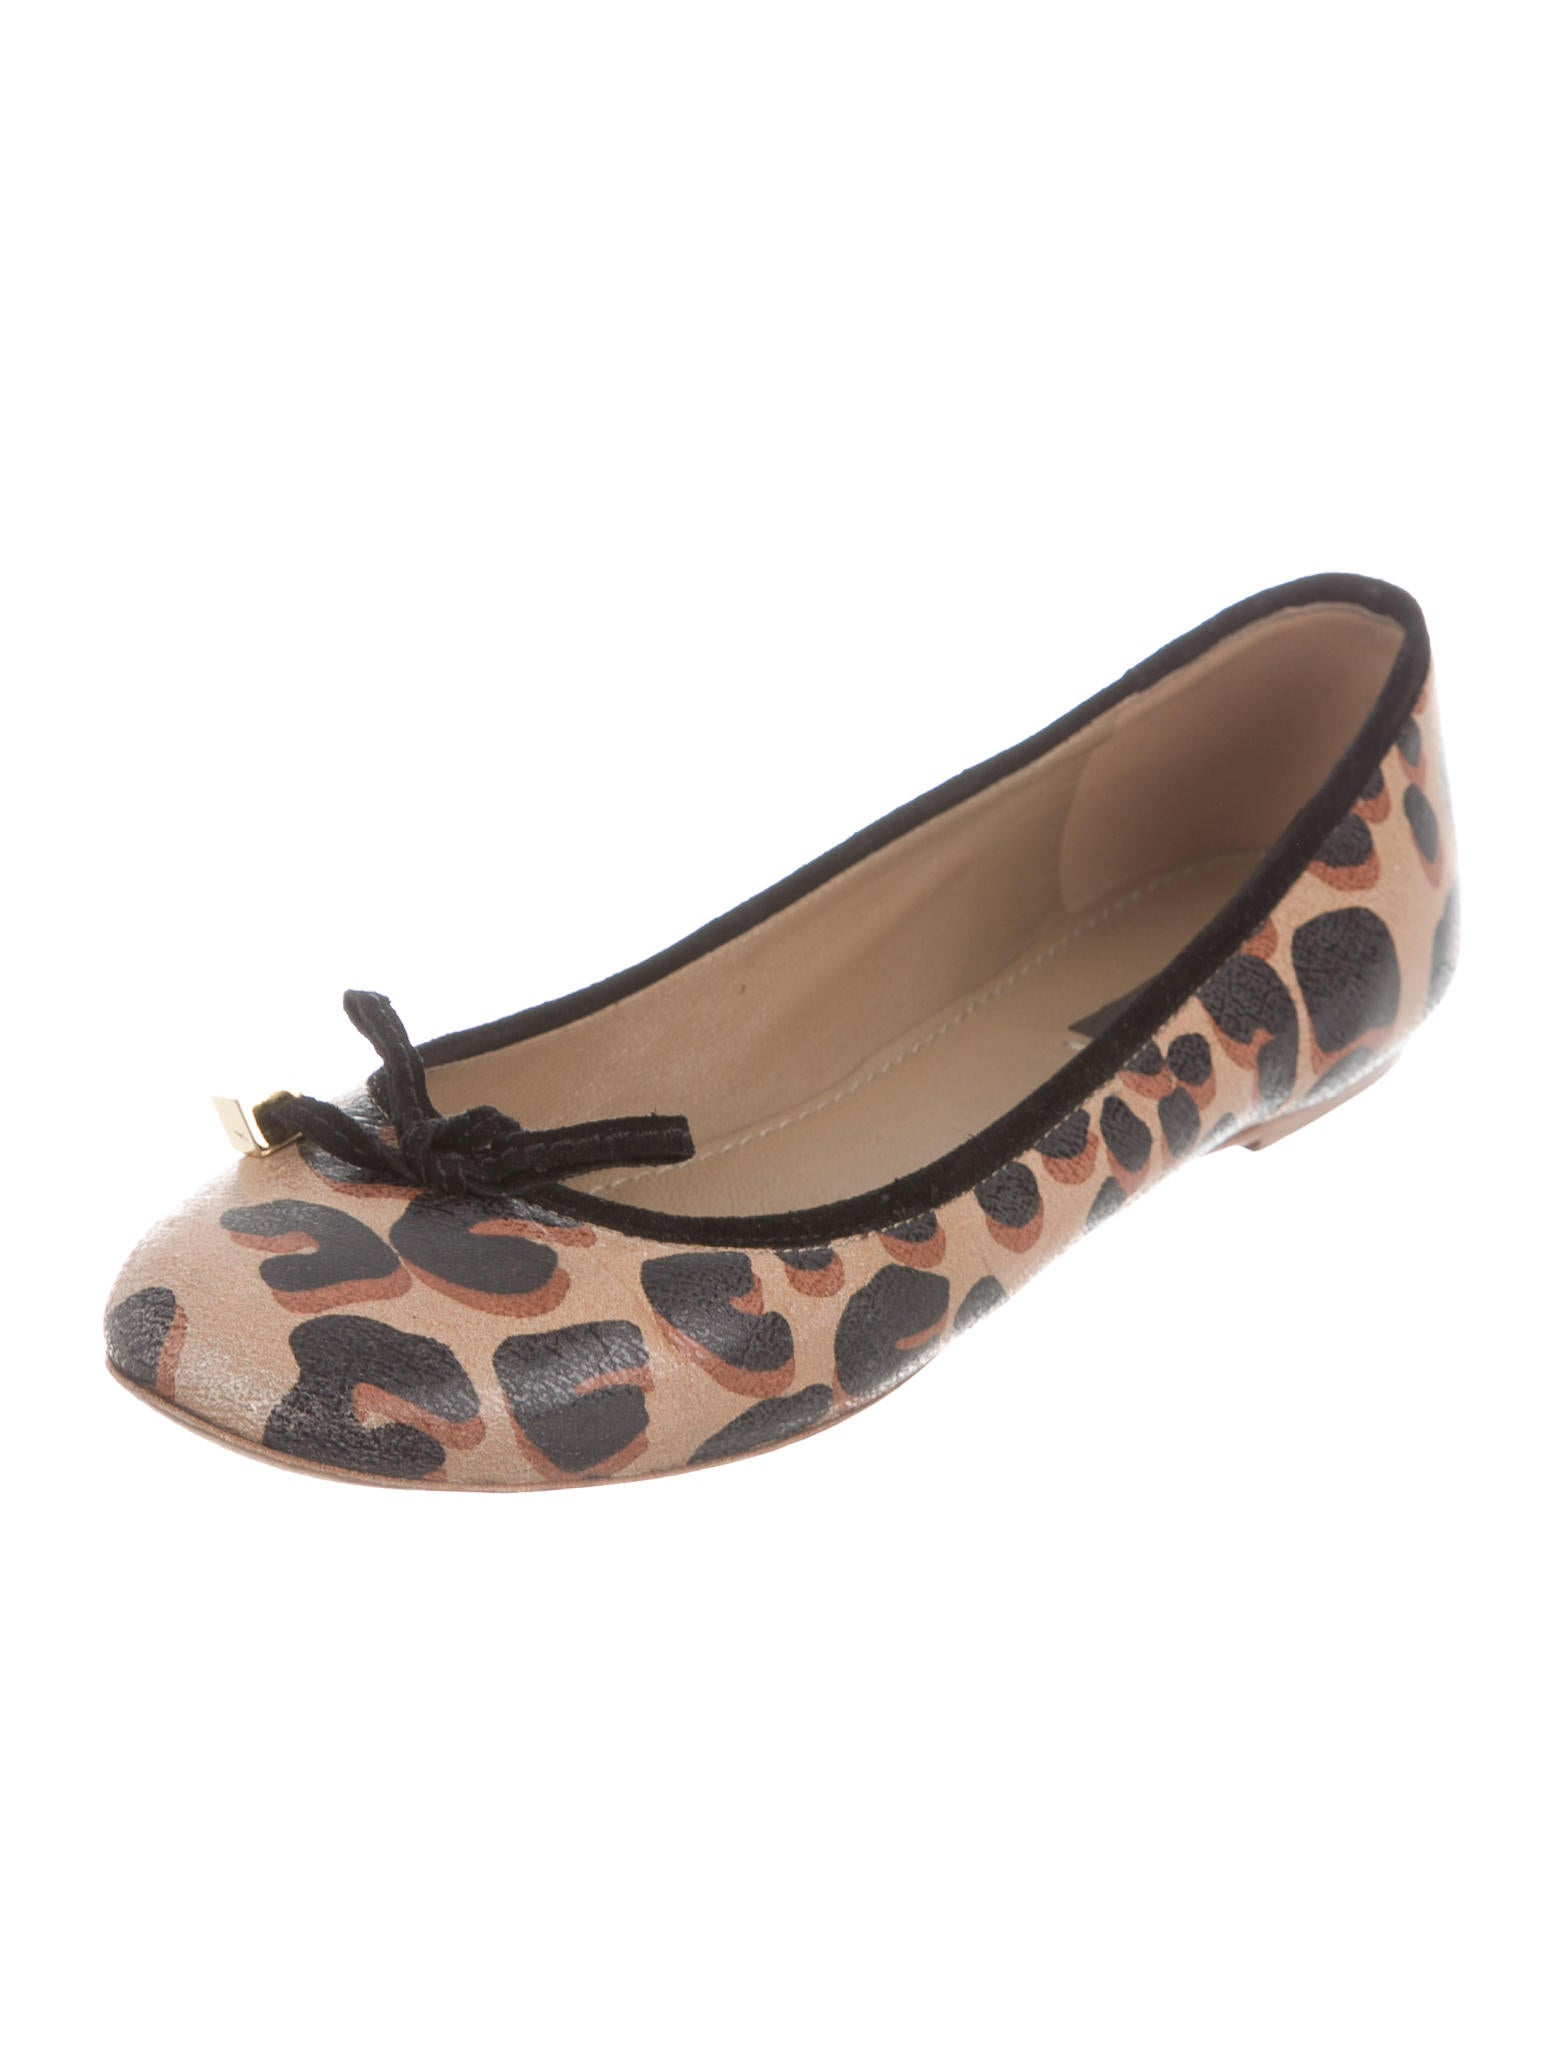 Chic Shops: Leopard Print Ballet Flats I've been shopping around for several things to update my wardrobe. I've been in a bit of a drought the last couple years, so now that I'm buying again, I'm stocking up on staples while still trying to incorporate a few new, trendier items to keep my wardrobe fresh.